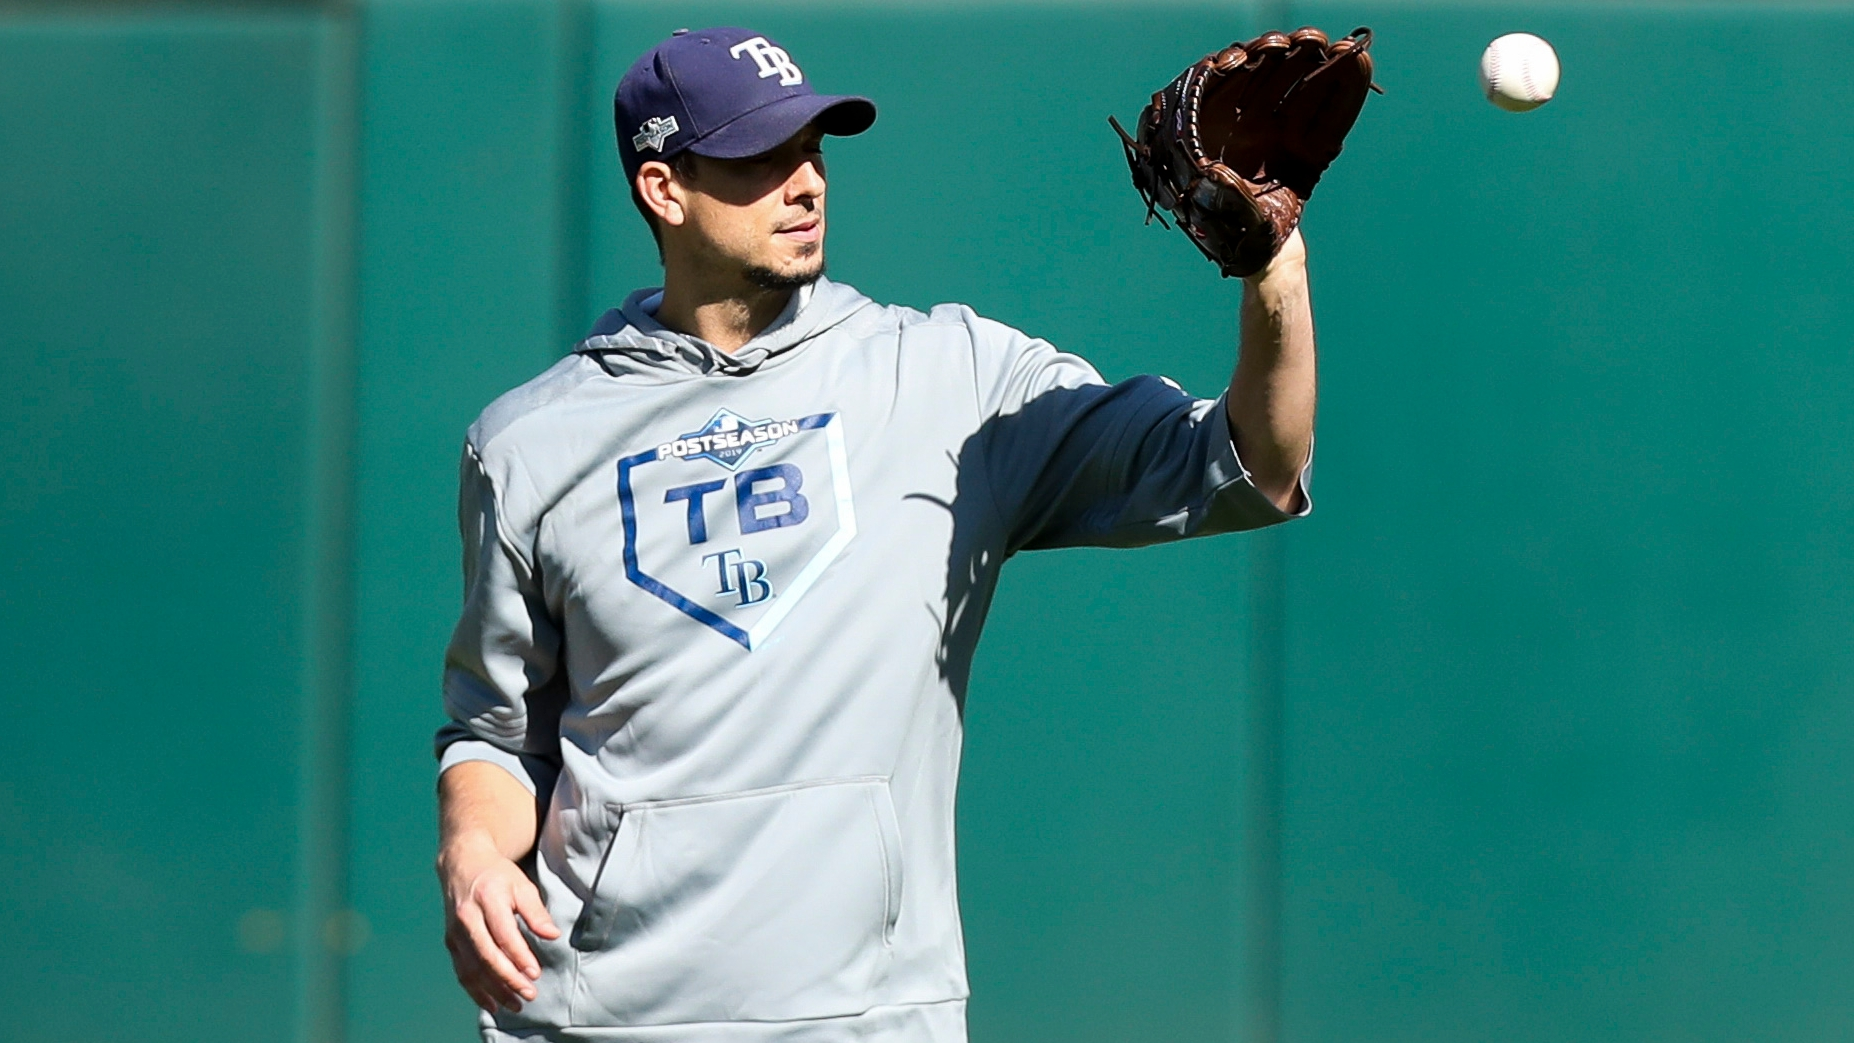 rays charlie morton finds perfection before he throws the first pitch rays charlie morton finds perfection